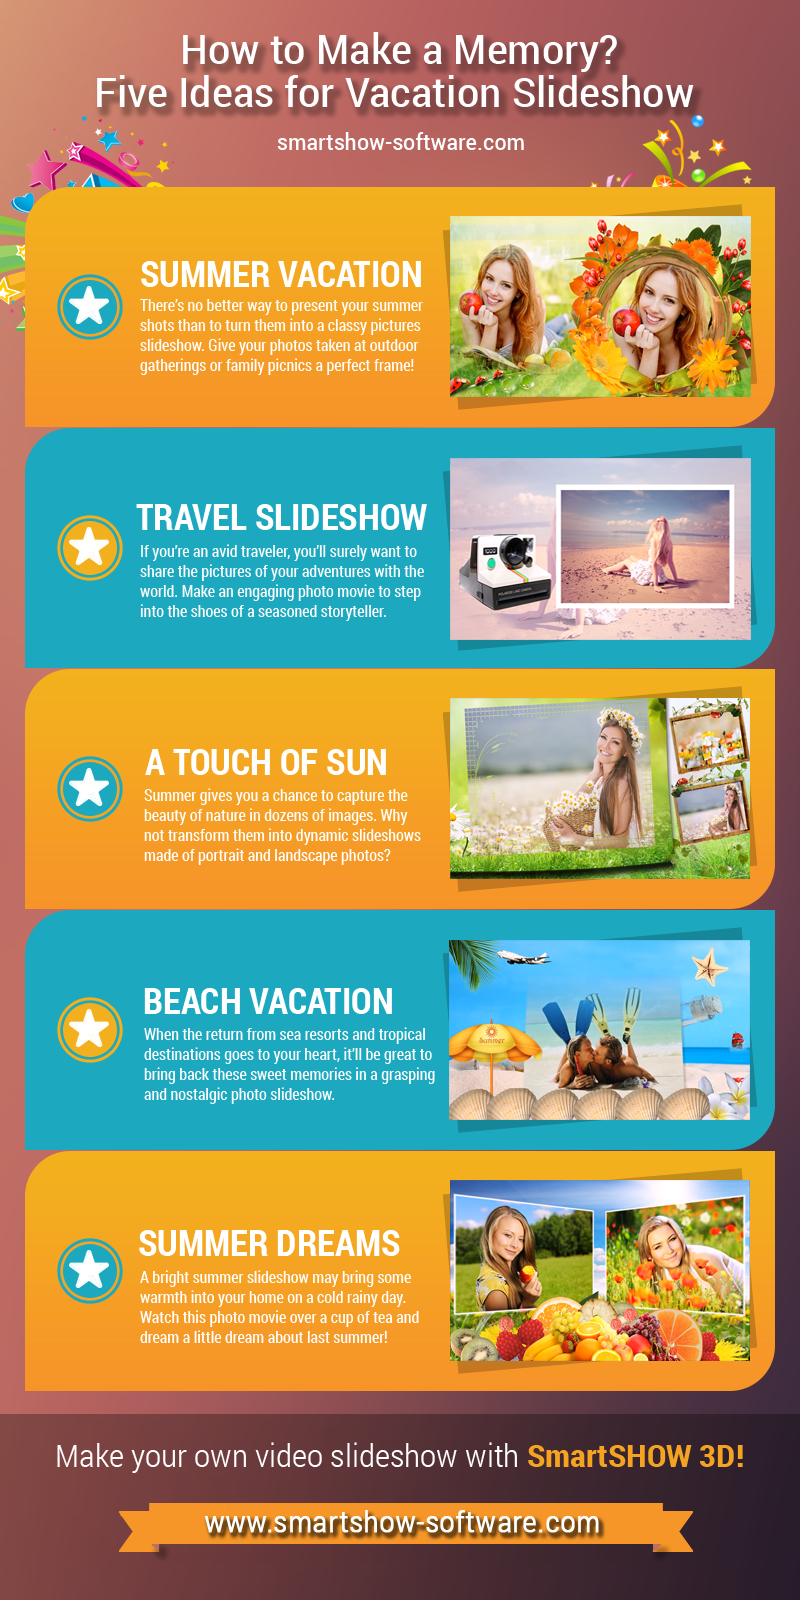 Five ideas for vacation slideshow